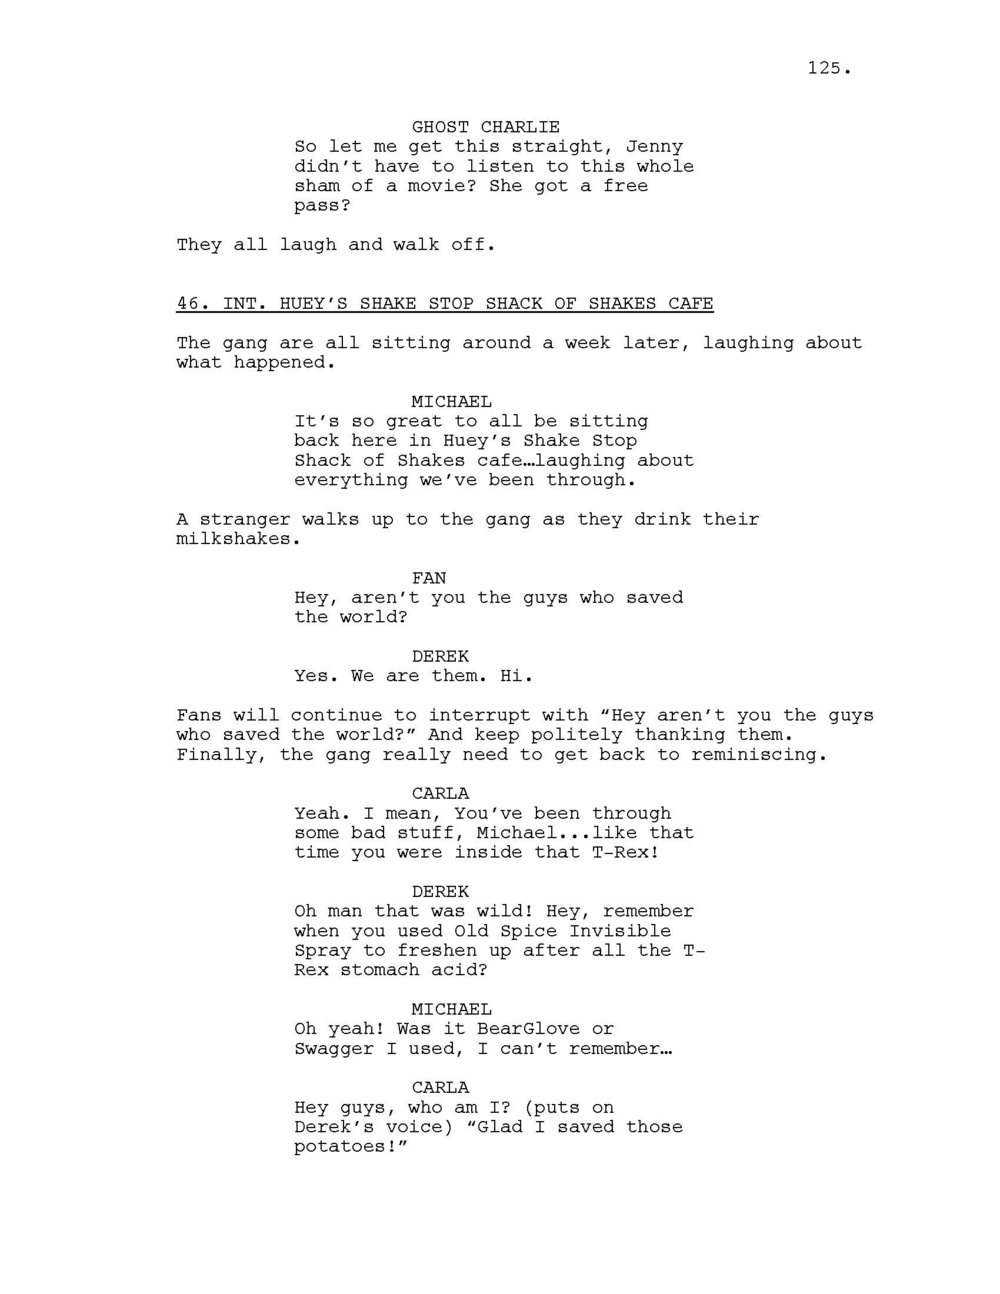 INVISIBLE WORLD SCRIPT_Page_126.jpg